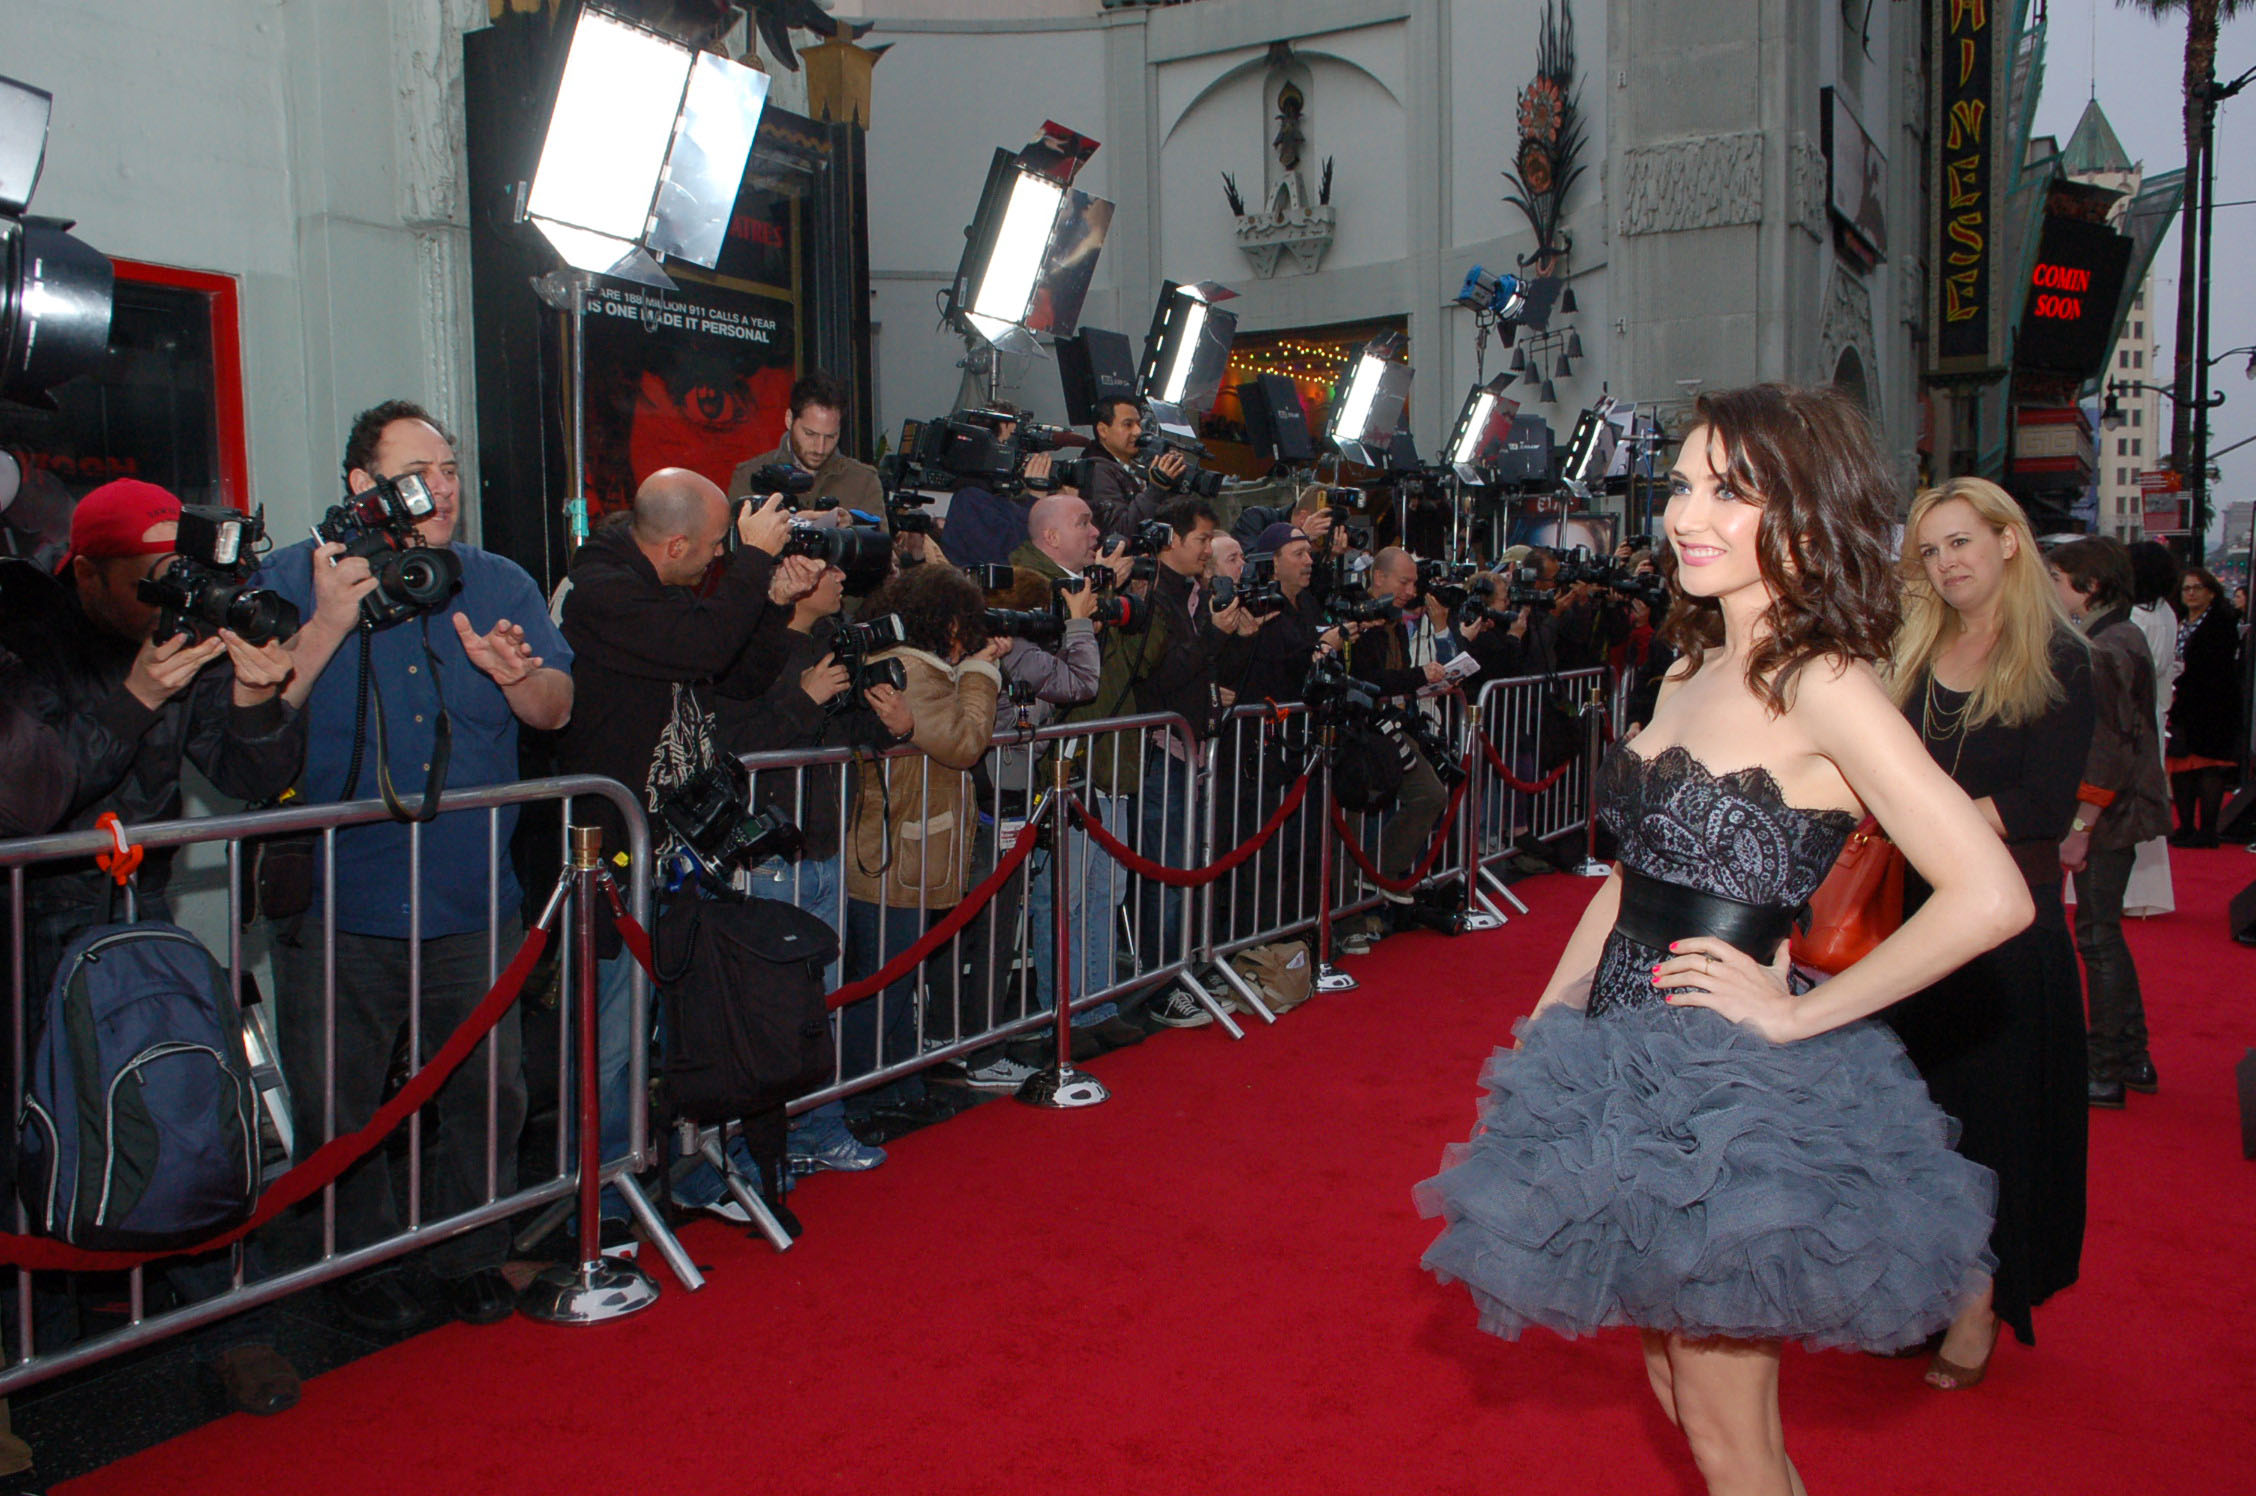 Photographers on red carpet